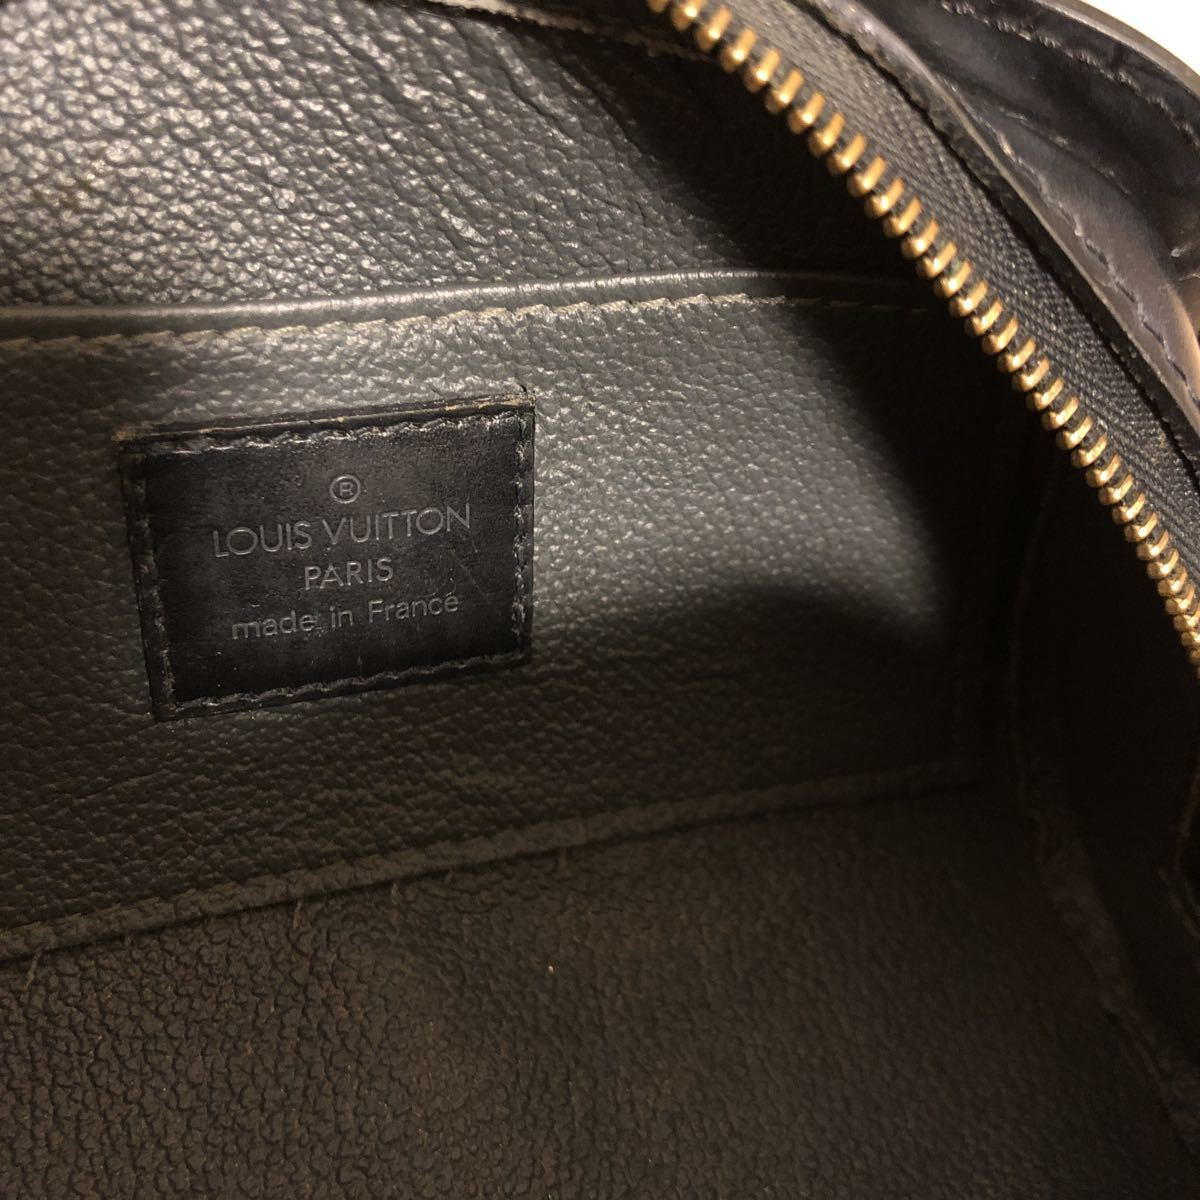 LOUIS VUITTON ルイヴィトン エピ ドフィーヌPM ポーチ 黒_画像4